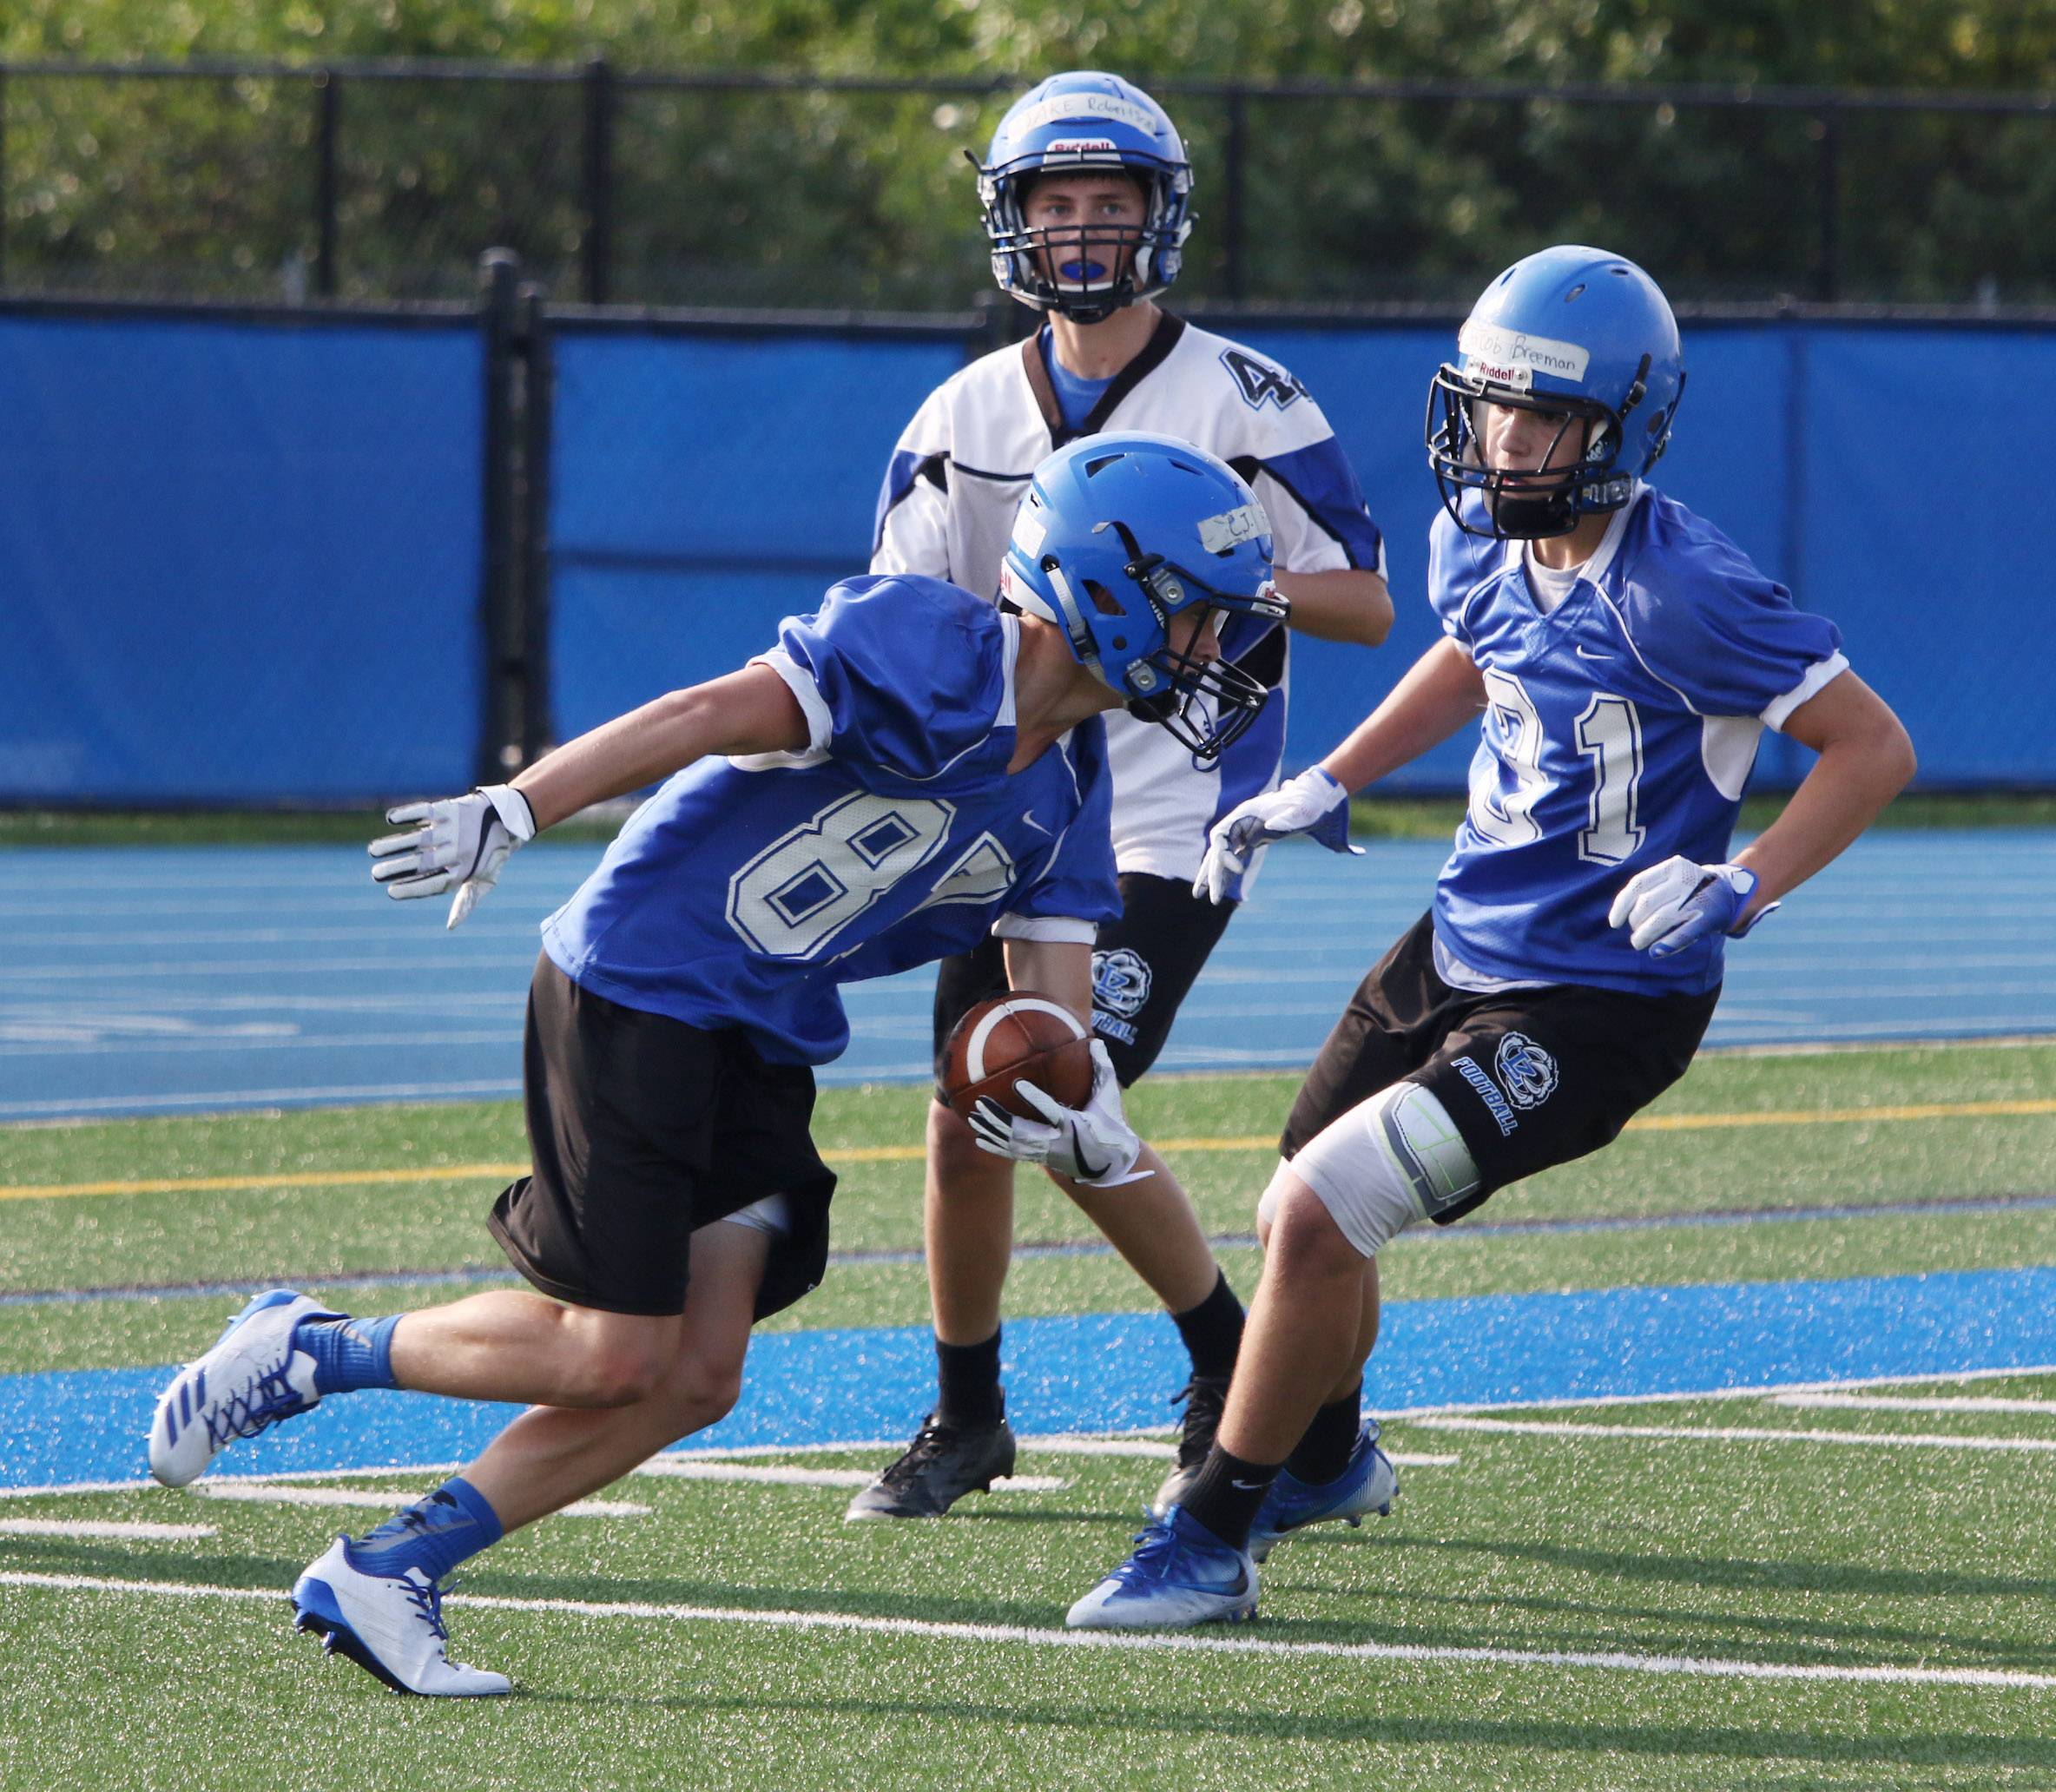 Wide receiver C.J. Holder runs around Jacob Breeman, right, after catching the ball during the first day of football practice at Lake Zurich High School on Monday.